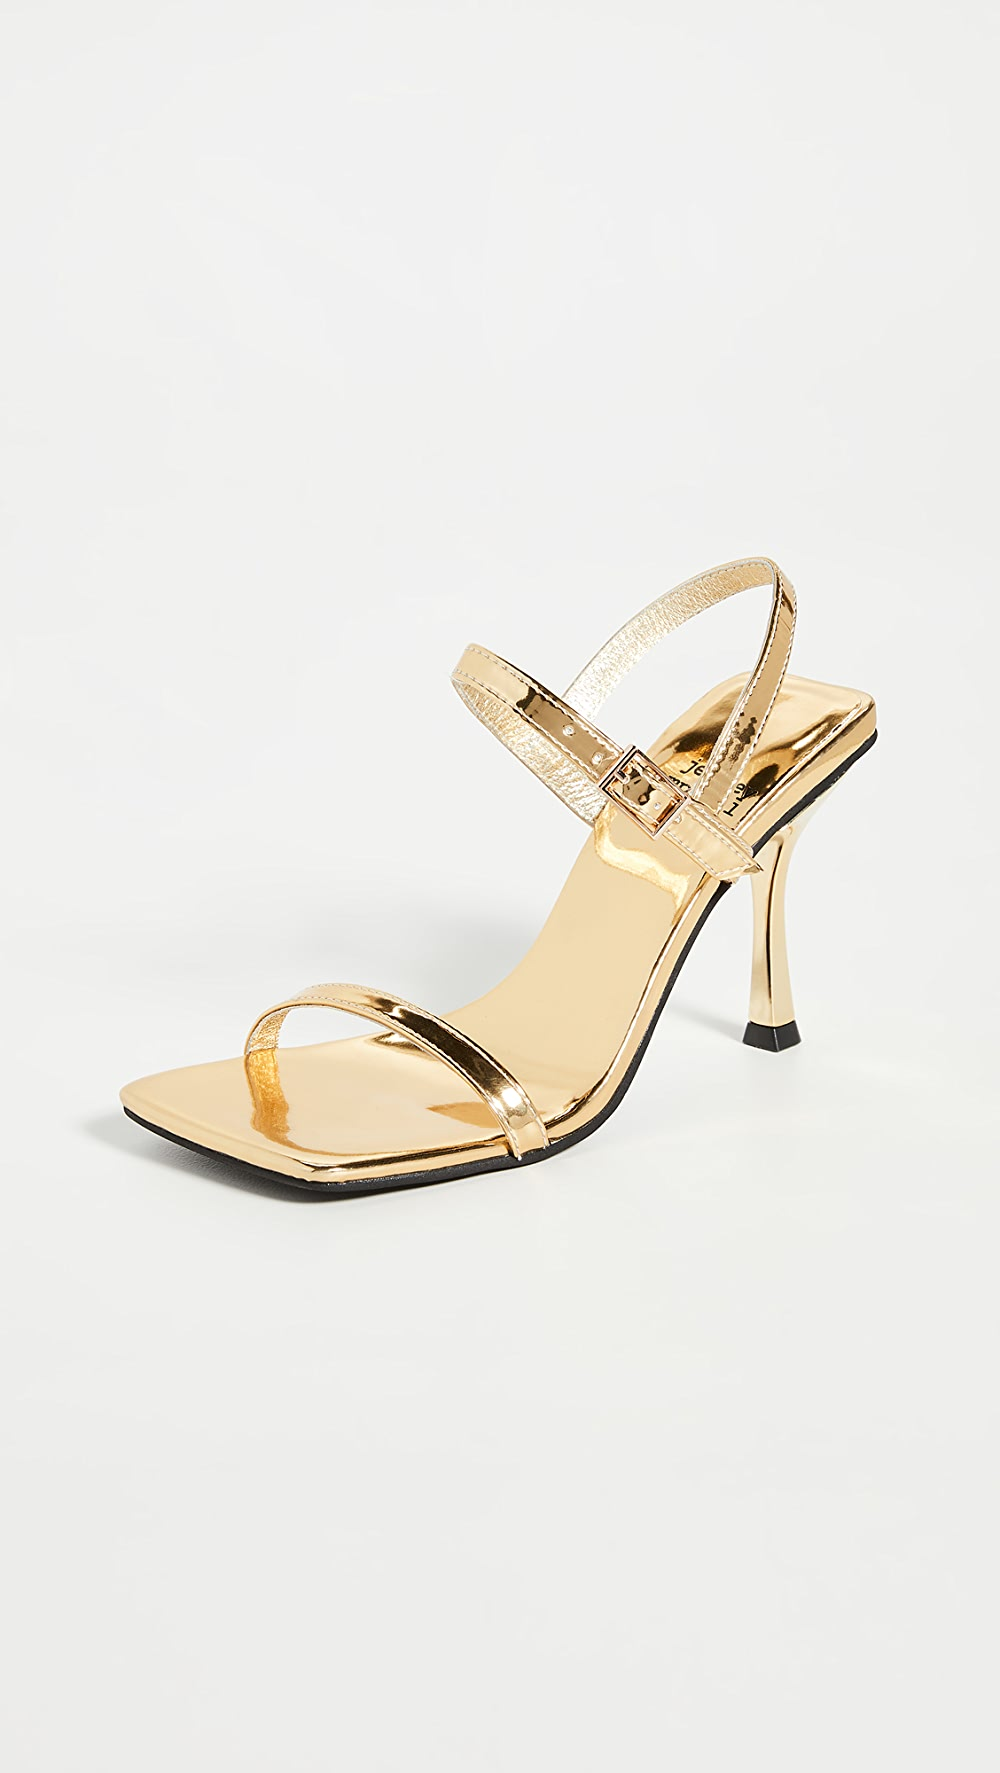 Fine Jeffrey Campbell - Matinee Sandals Latest Technology